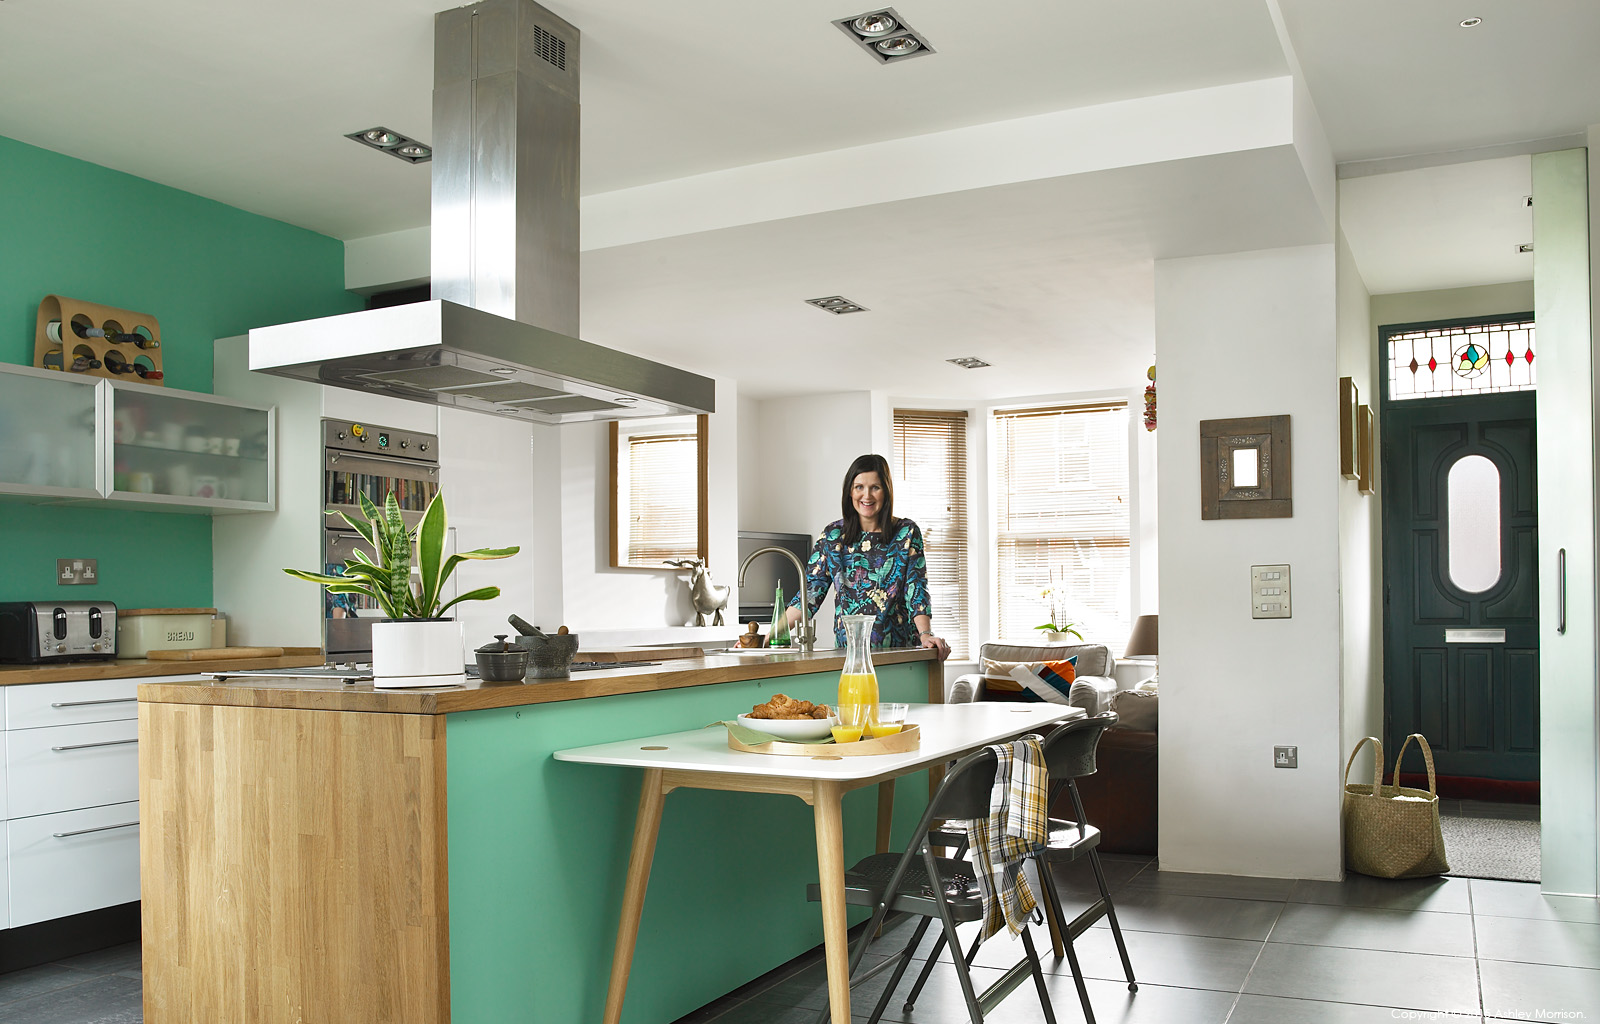 Siobhan McQuillan in the kitchen area of her semi detached home in Belfast.